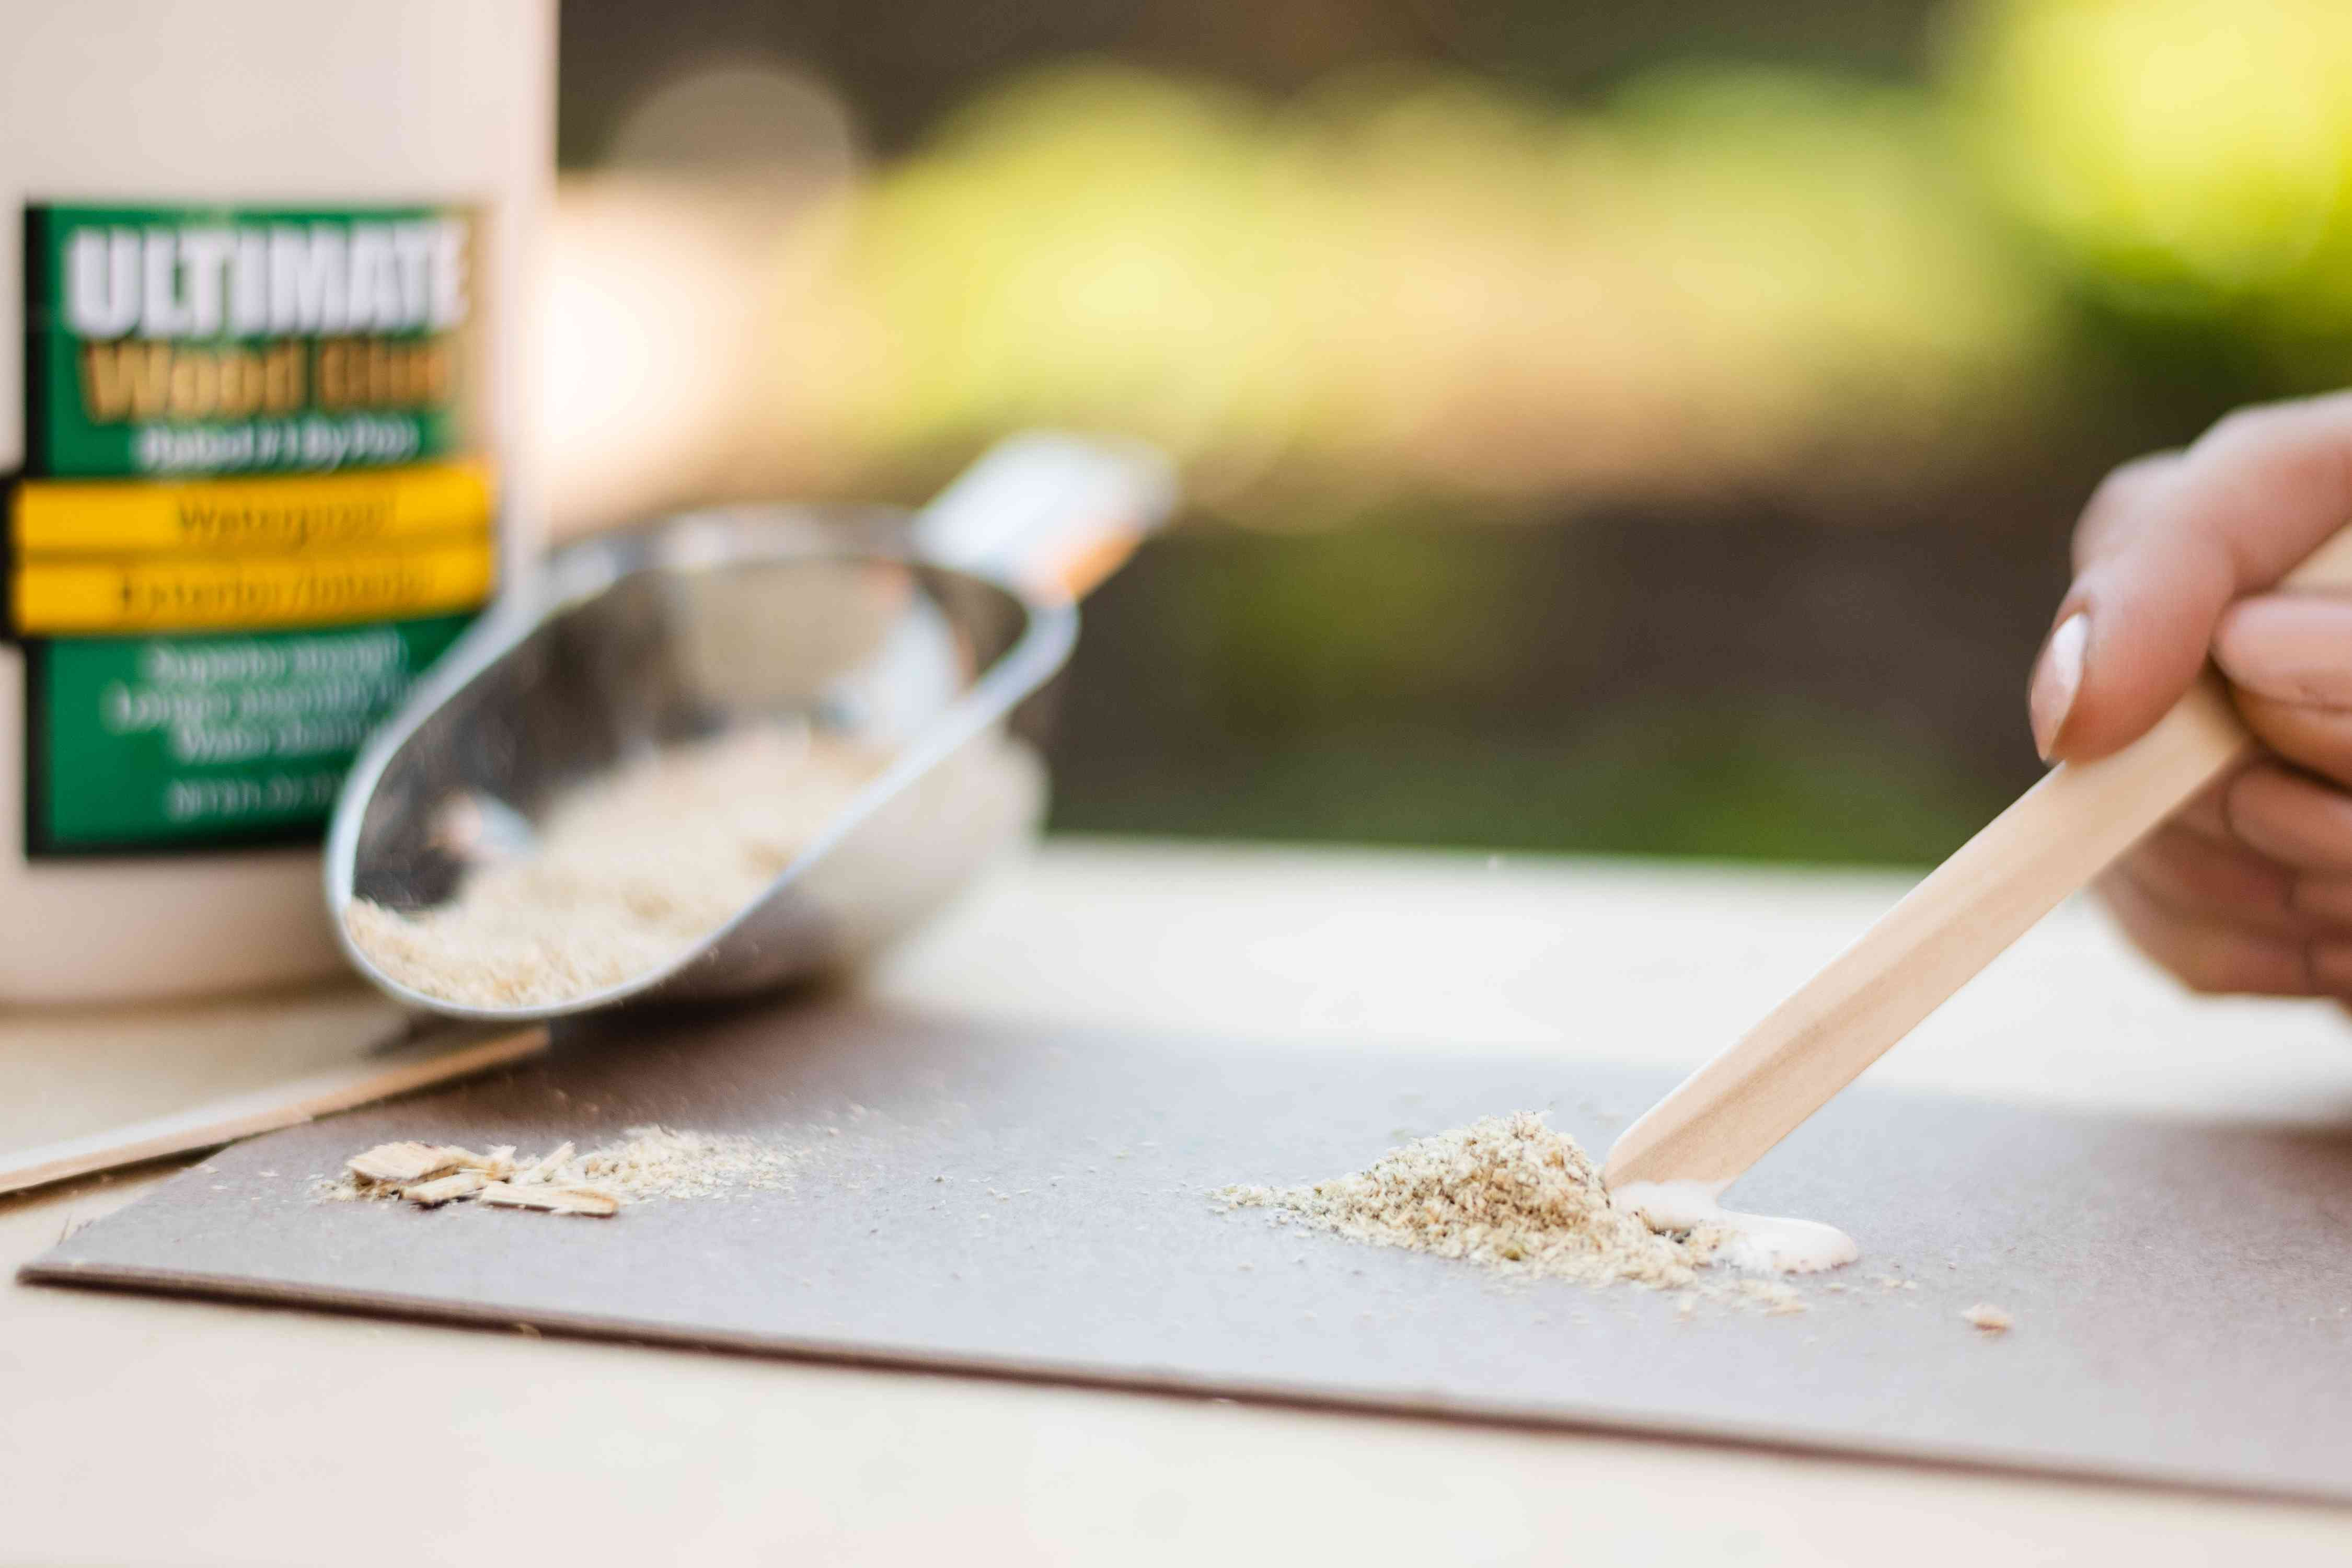 Sawdust and wood glue mixed with stick next to scoop of sawdust